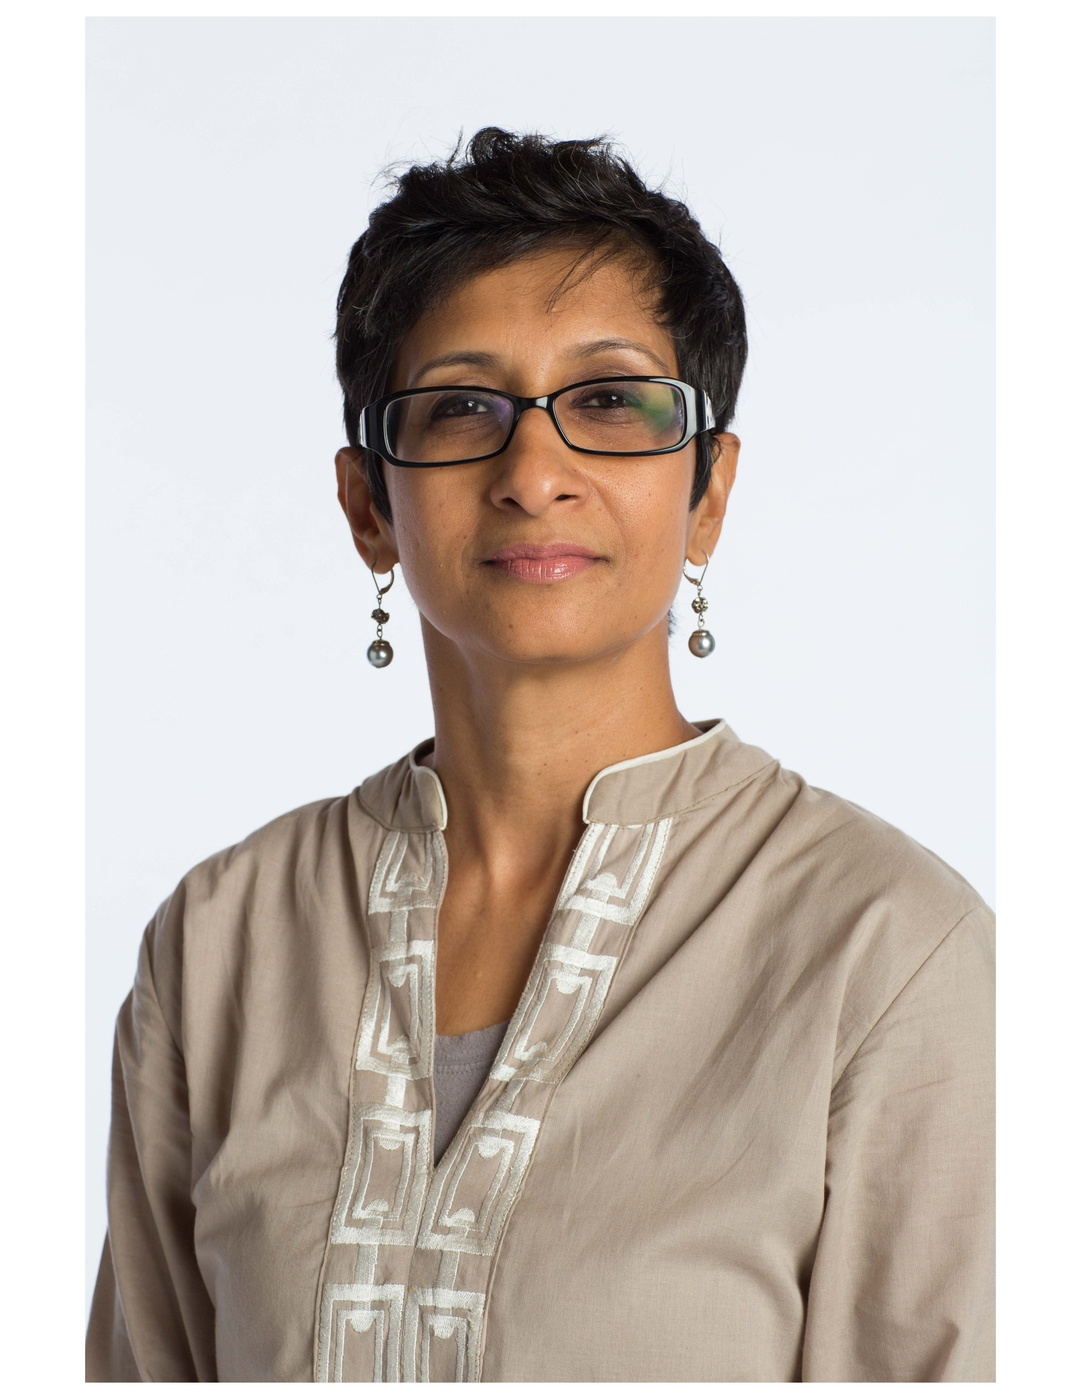 Revathi Hines, an Alphonse Jackson professor at the Nelson Mandela College of Government and Social Sciences, Southern University Baton Rouge, has been named an Aspen Ideas Scholar.